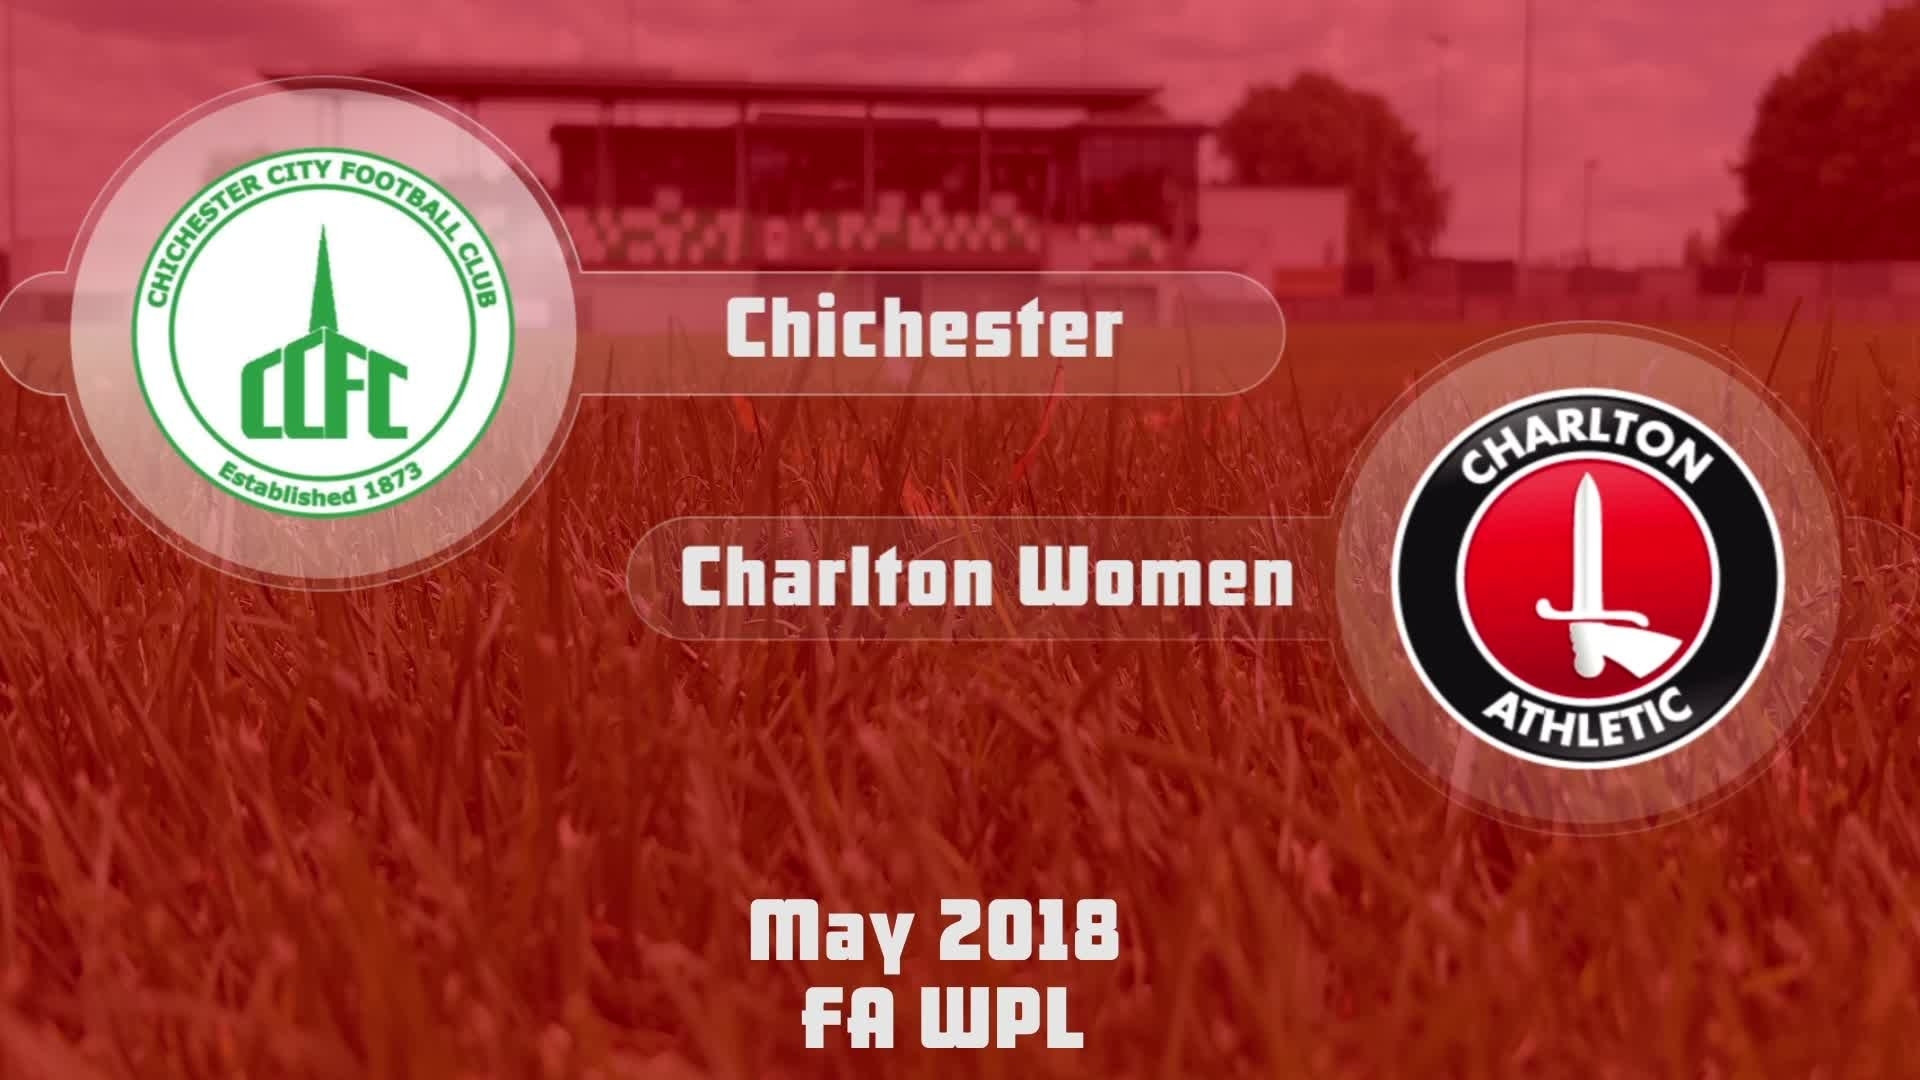 WOMEN HIGHLIGHTS | Chichester 0 Charlton 6 (May 2018)